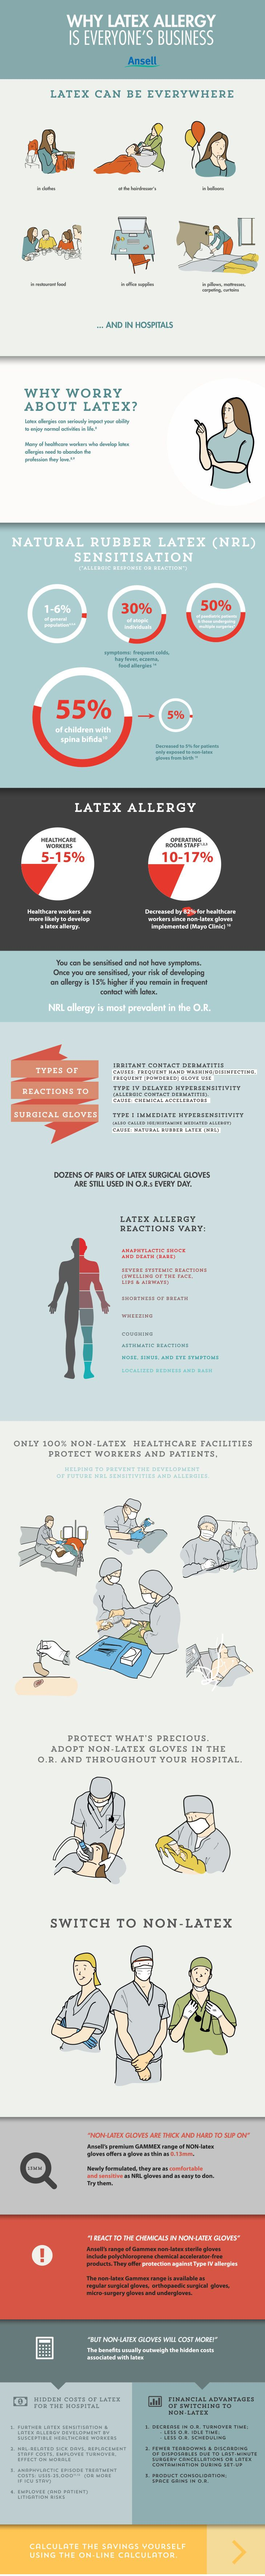 infographic for Ansell about latex allergy